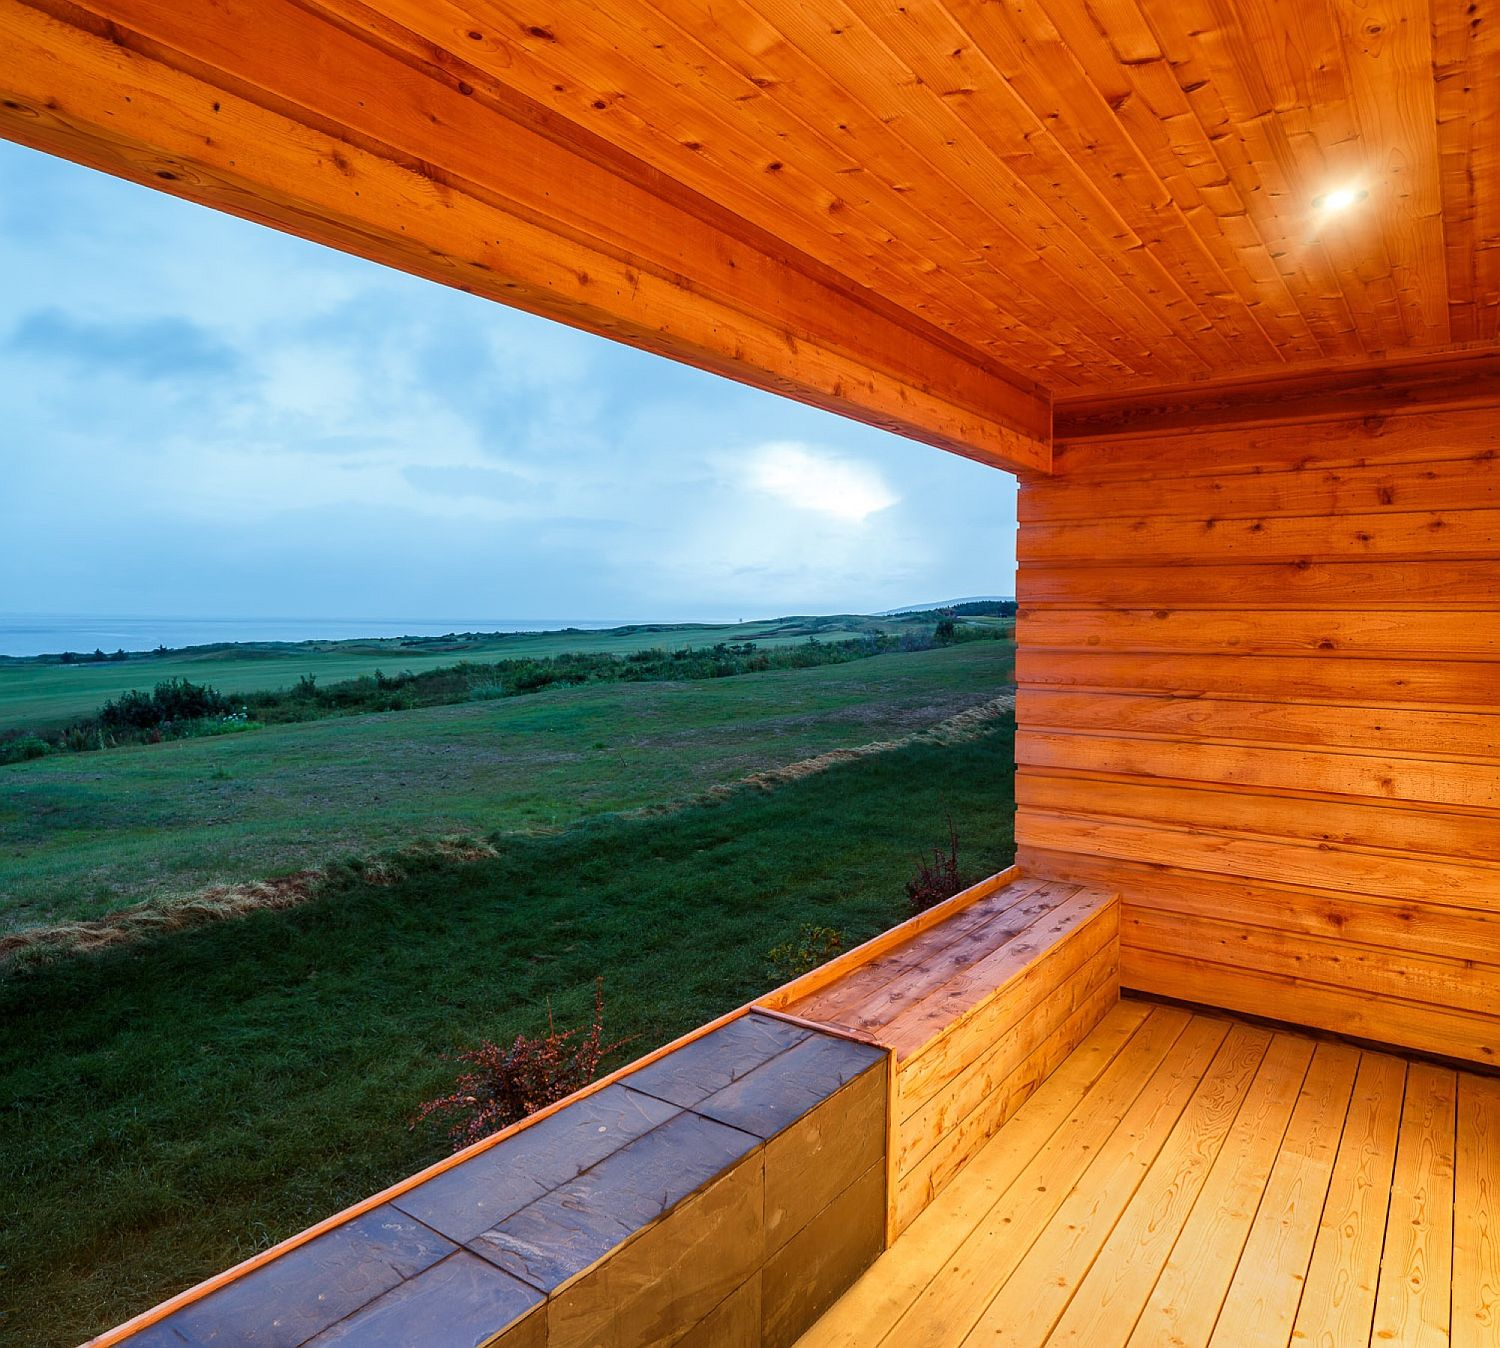 View of the lovely landscape and golf course from the stylish cabins